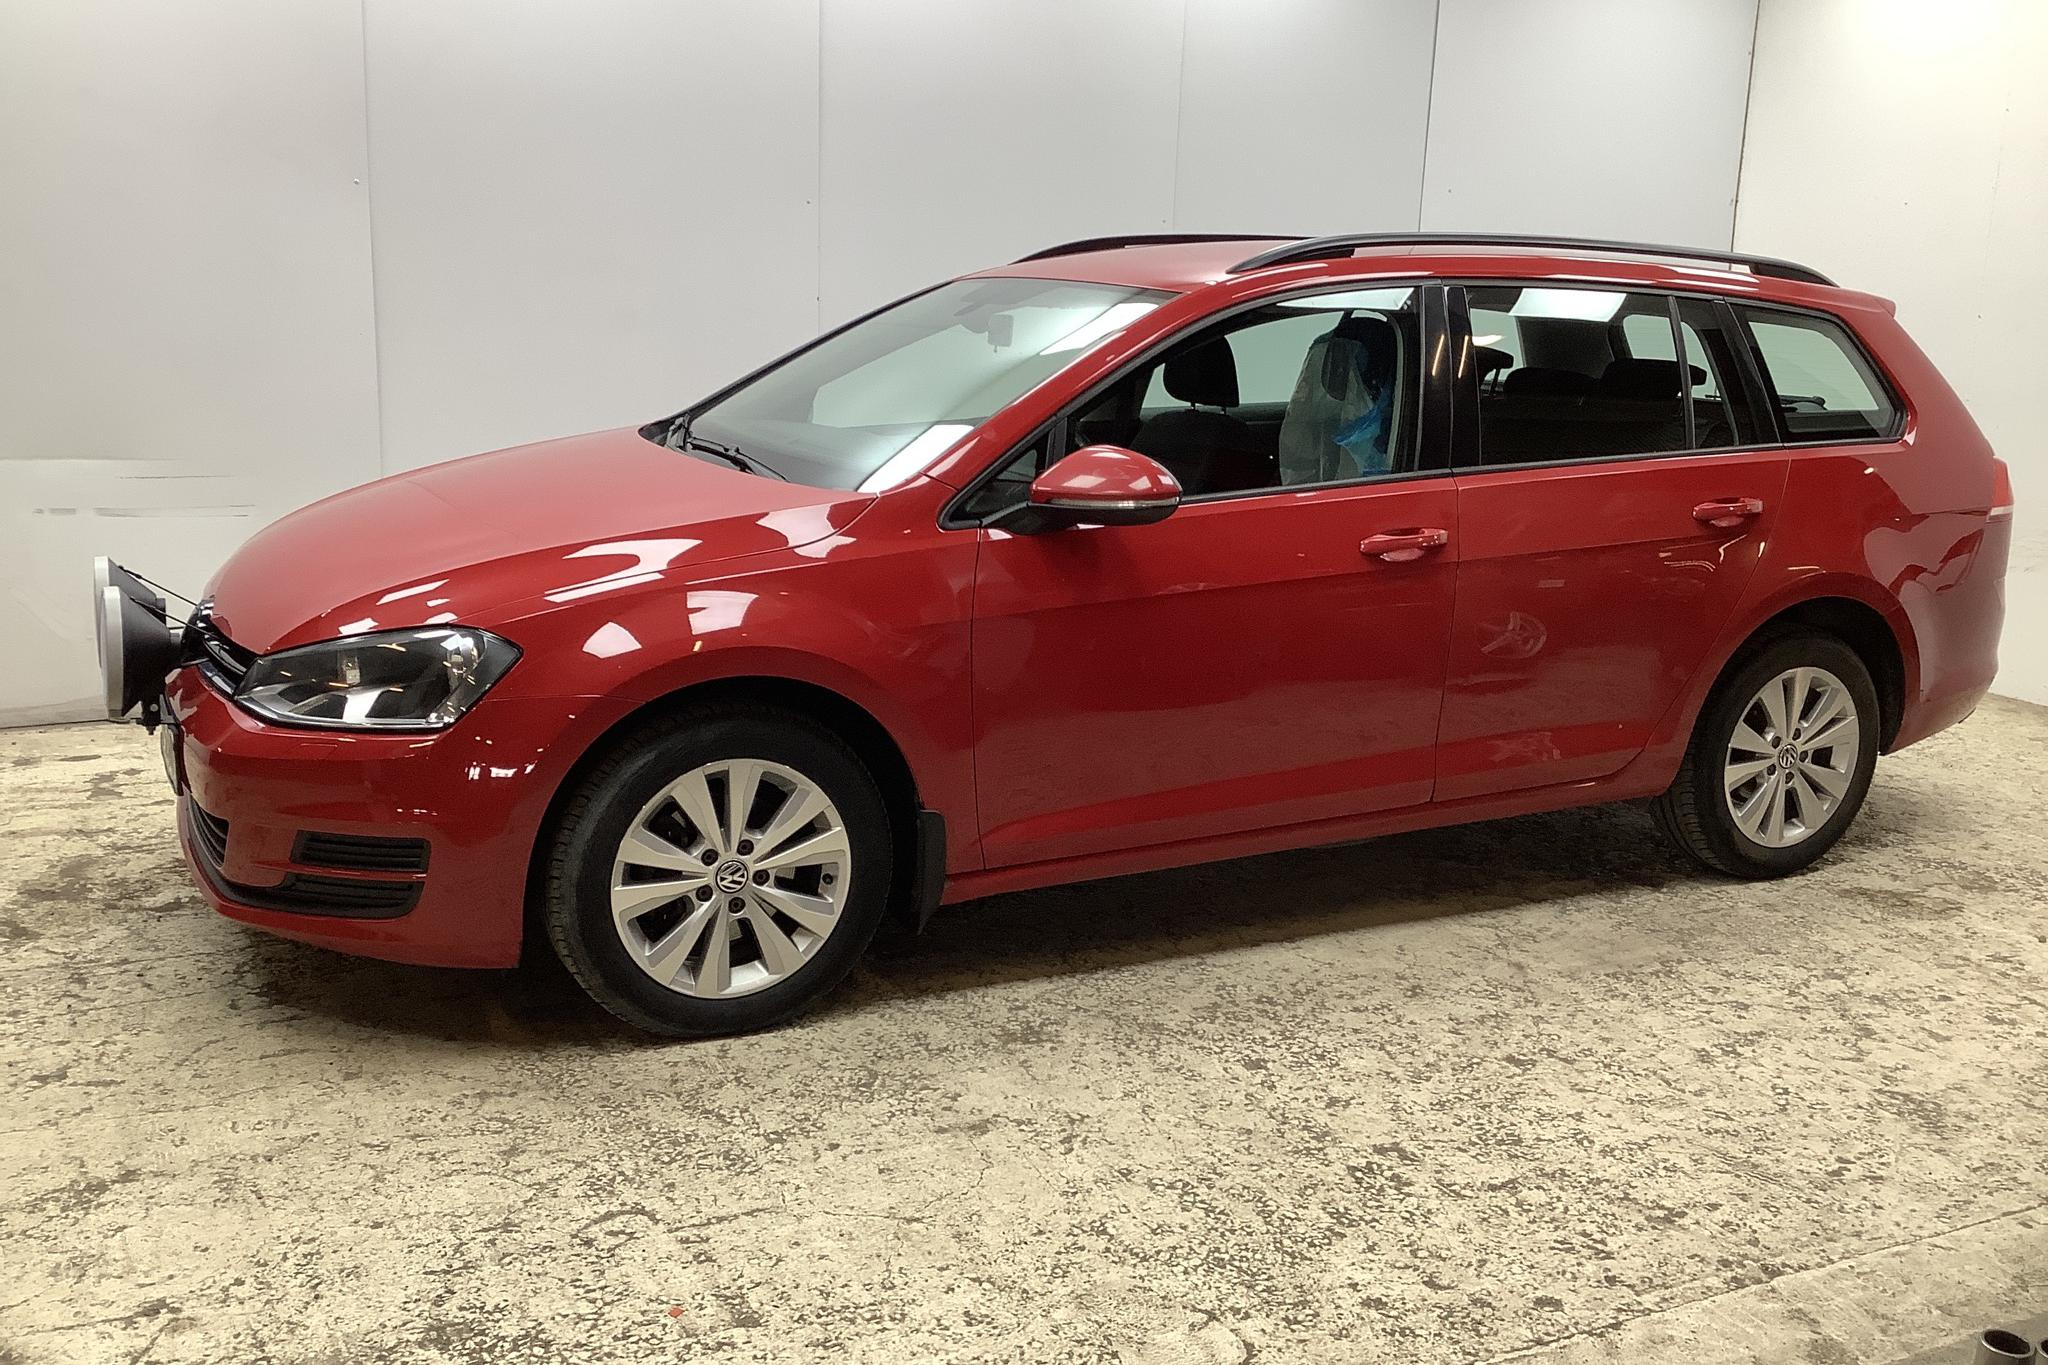 VW Golf VII 1.6 TDI BlueMotion Technology Sportscombi 4Motion (105hk) - 21 212 mil - Manuell - röd - 2014